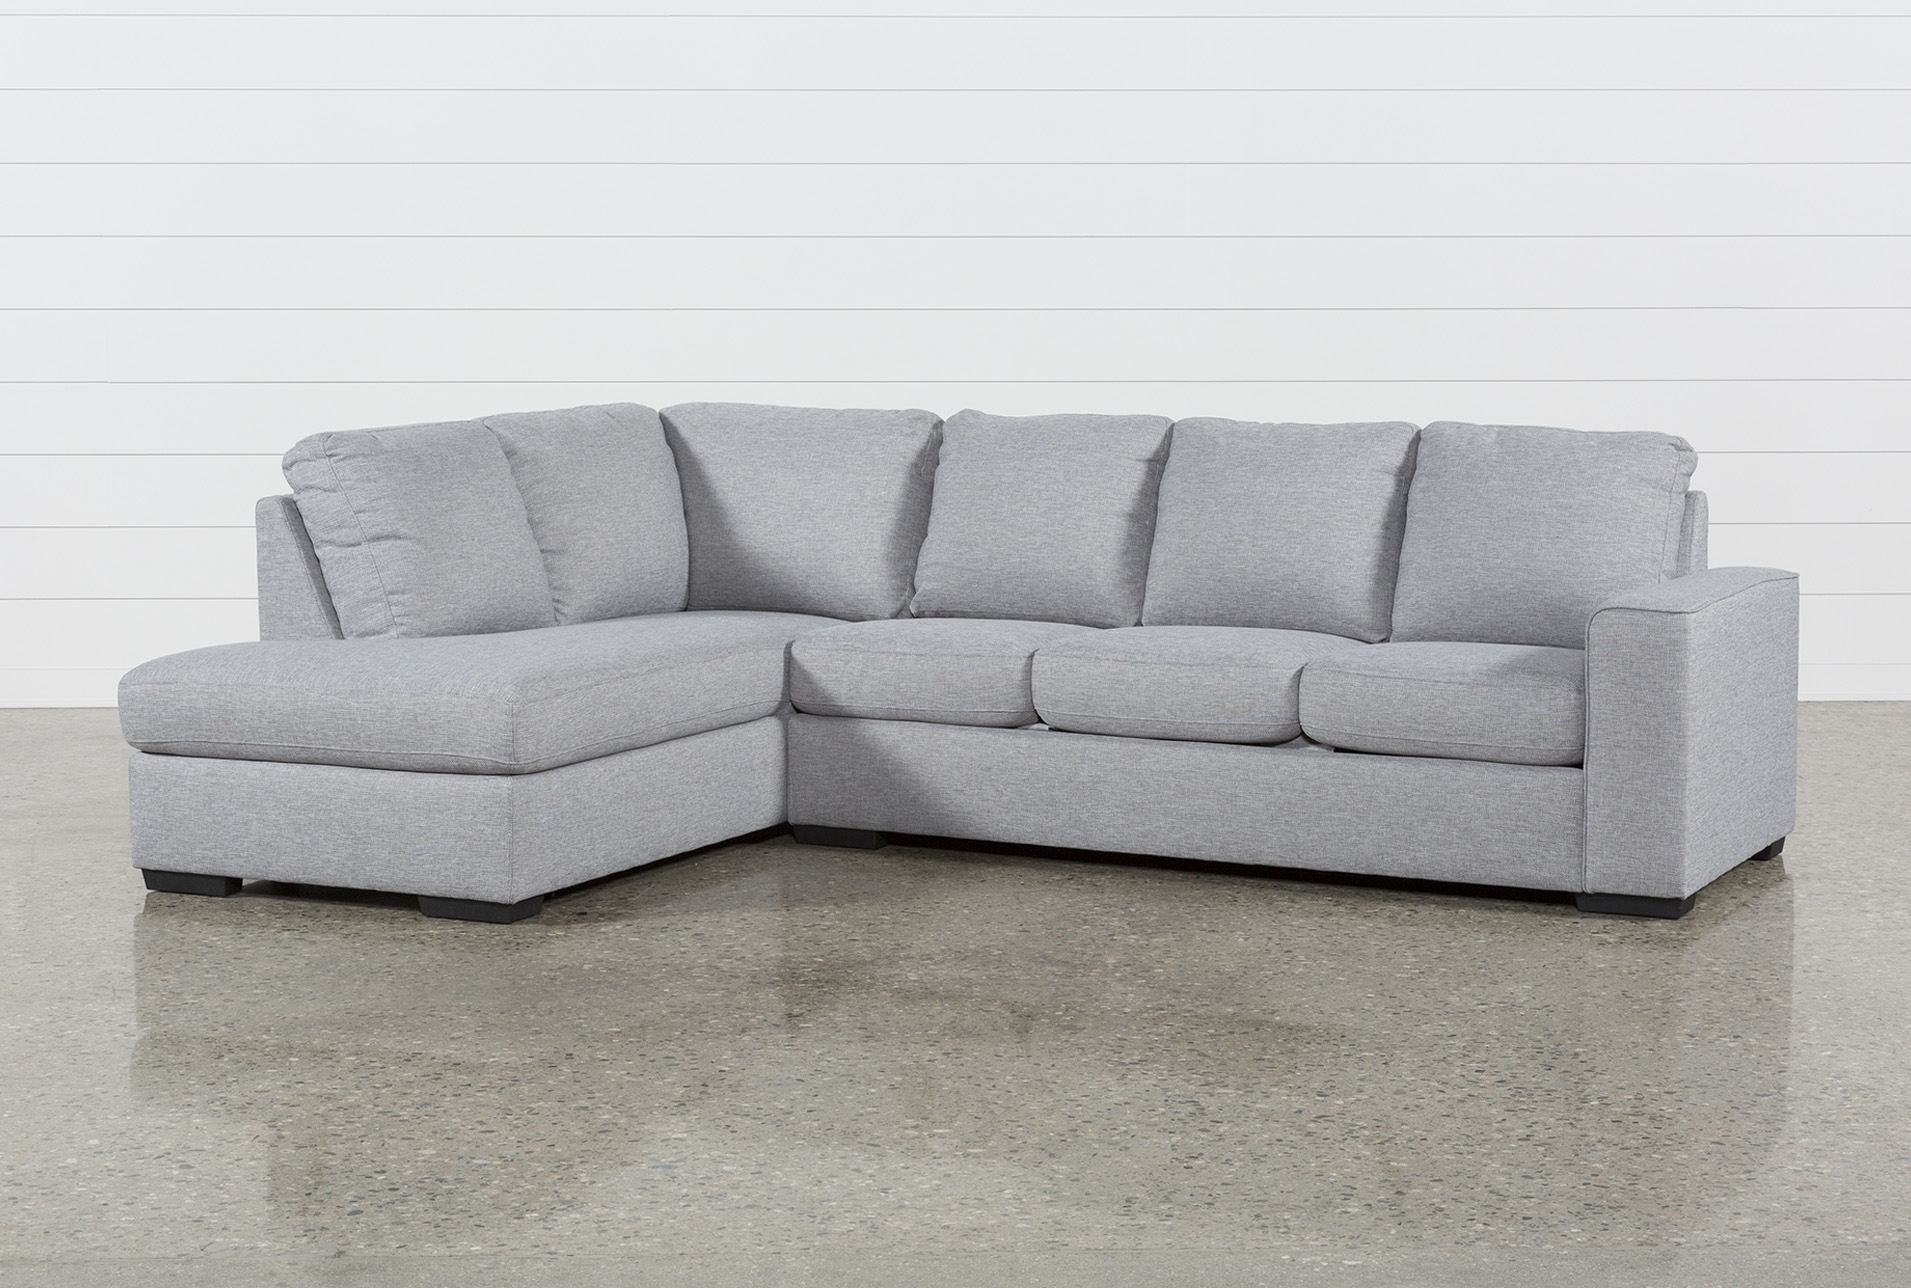 Lucy Grey 2 Piece Sectional W/laf Chaise | Products in Arrowmask 2 Piece Sectionals With Sleeper & Right Facing Chaise (Image 16 of 30)